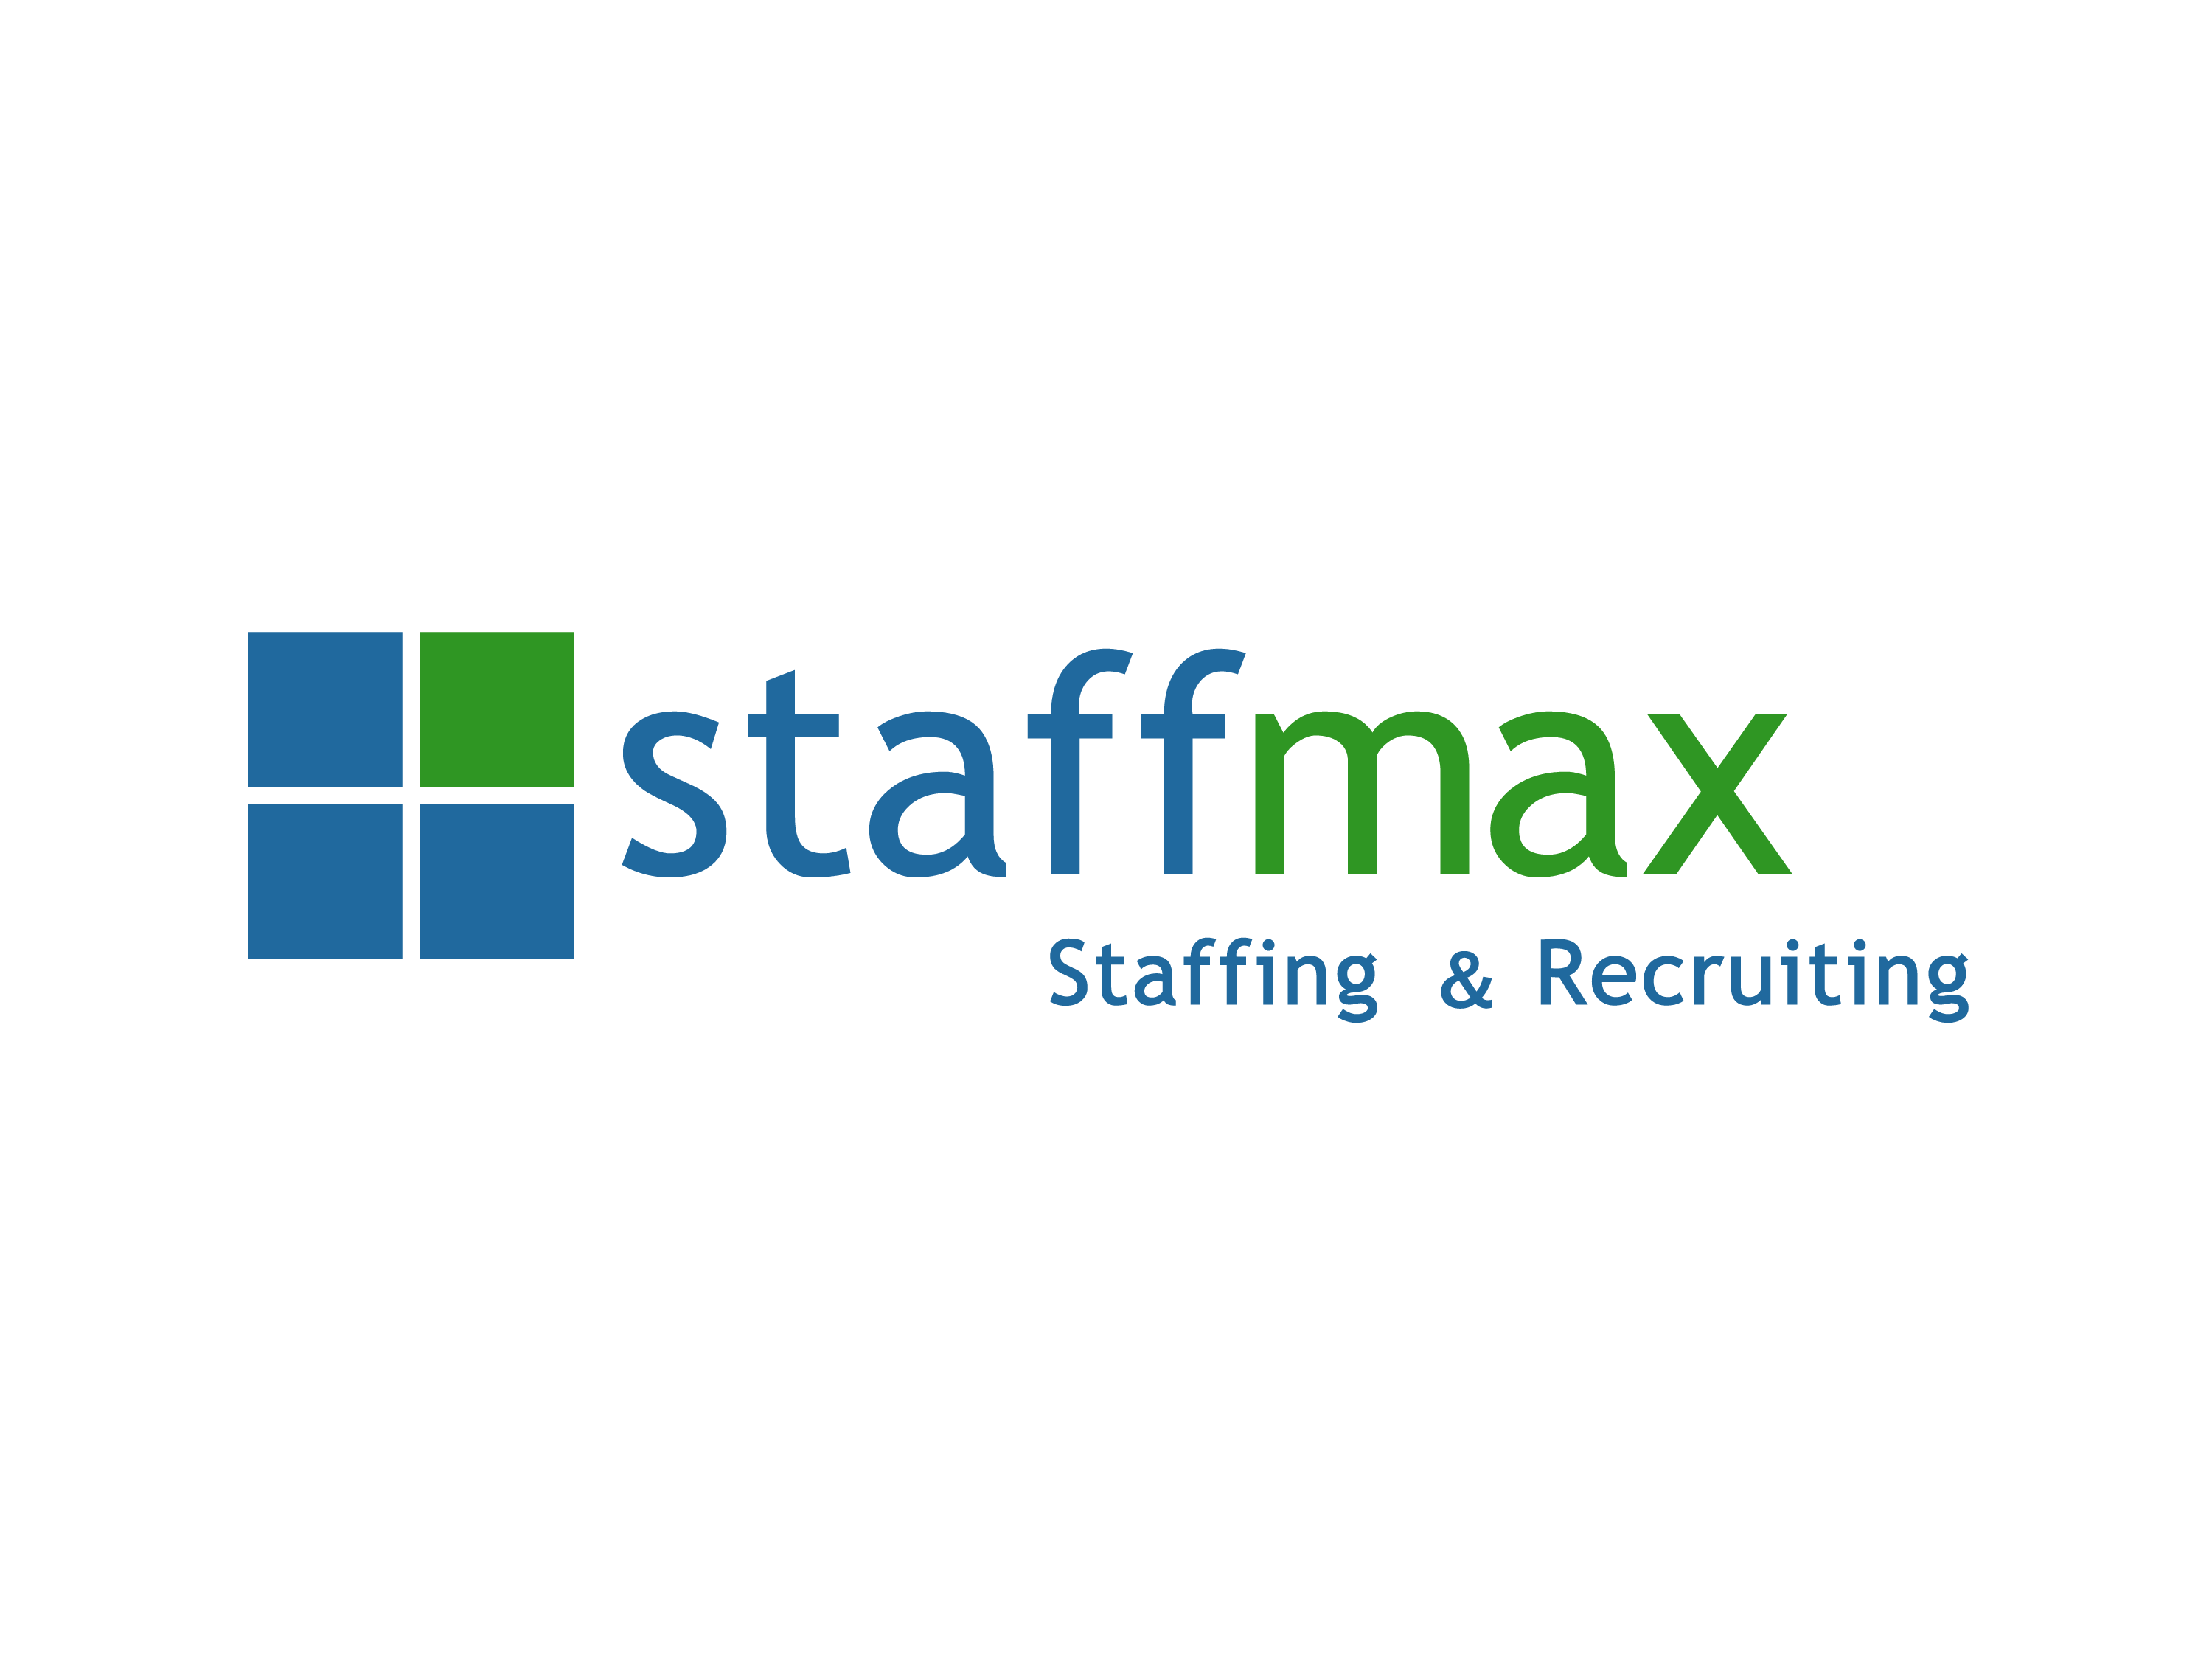 Staffmax Staffing & Recruiting